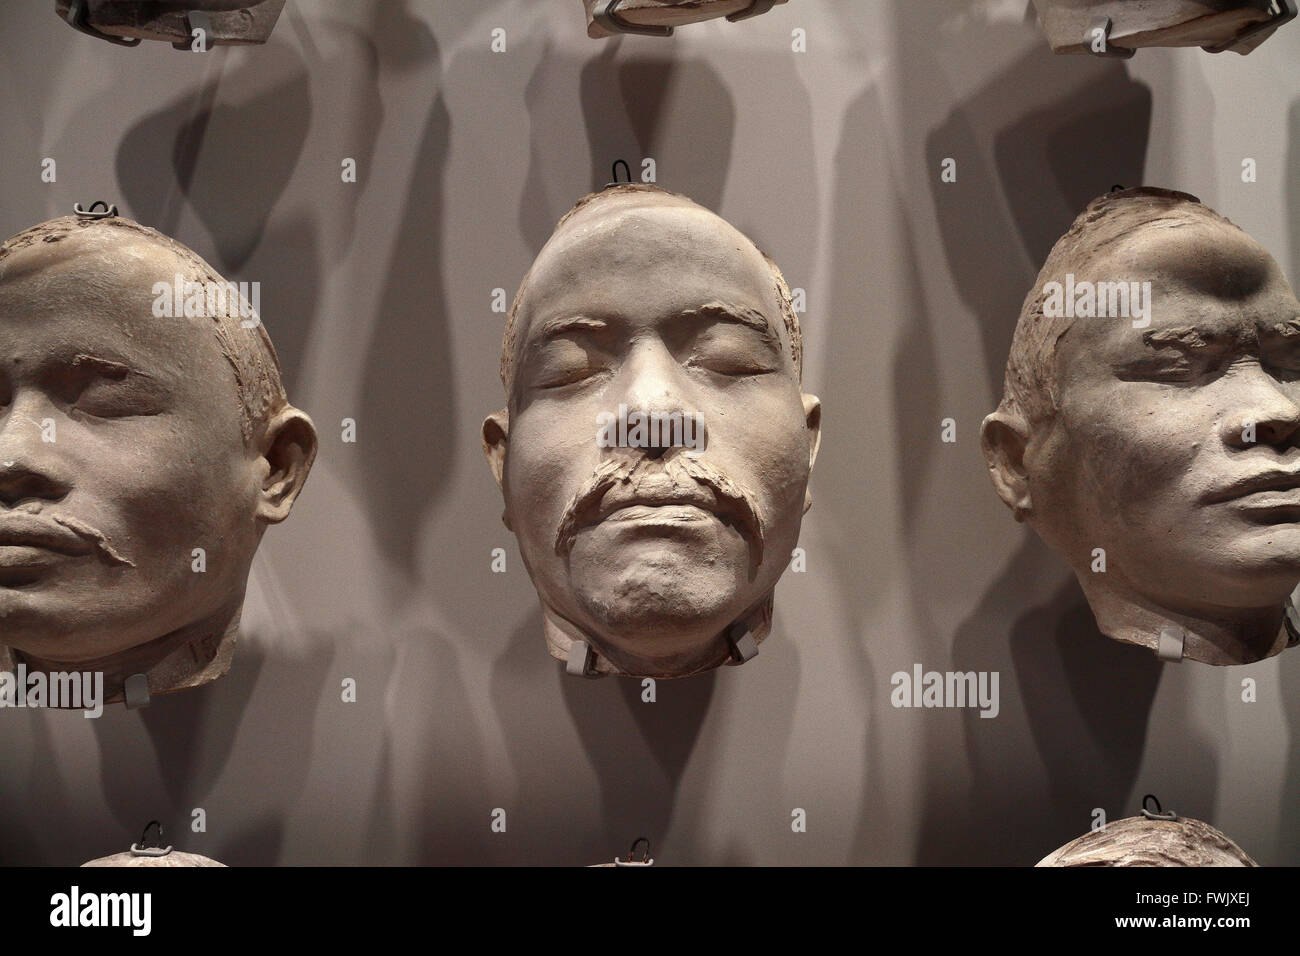 Facial casts of Nias islanders (after 1910) made of plaster on display in the Rijksmuseum, Amsterdam, Netherlands. - Stock Image